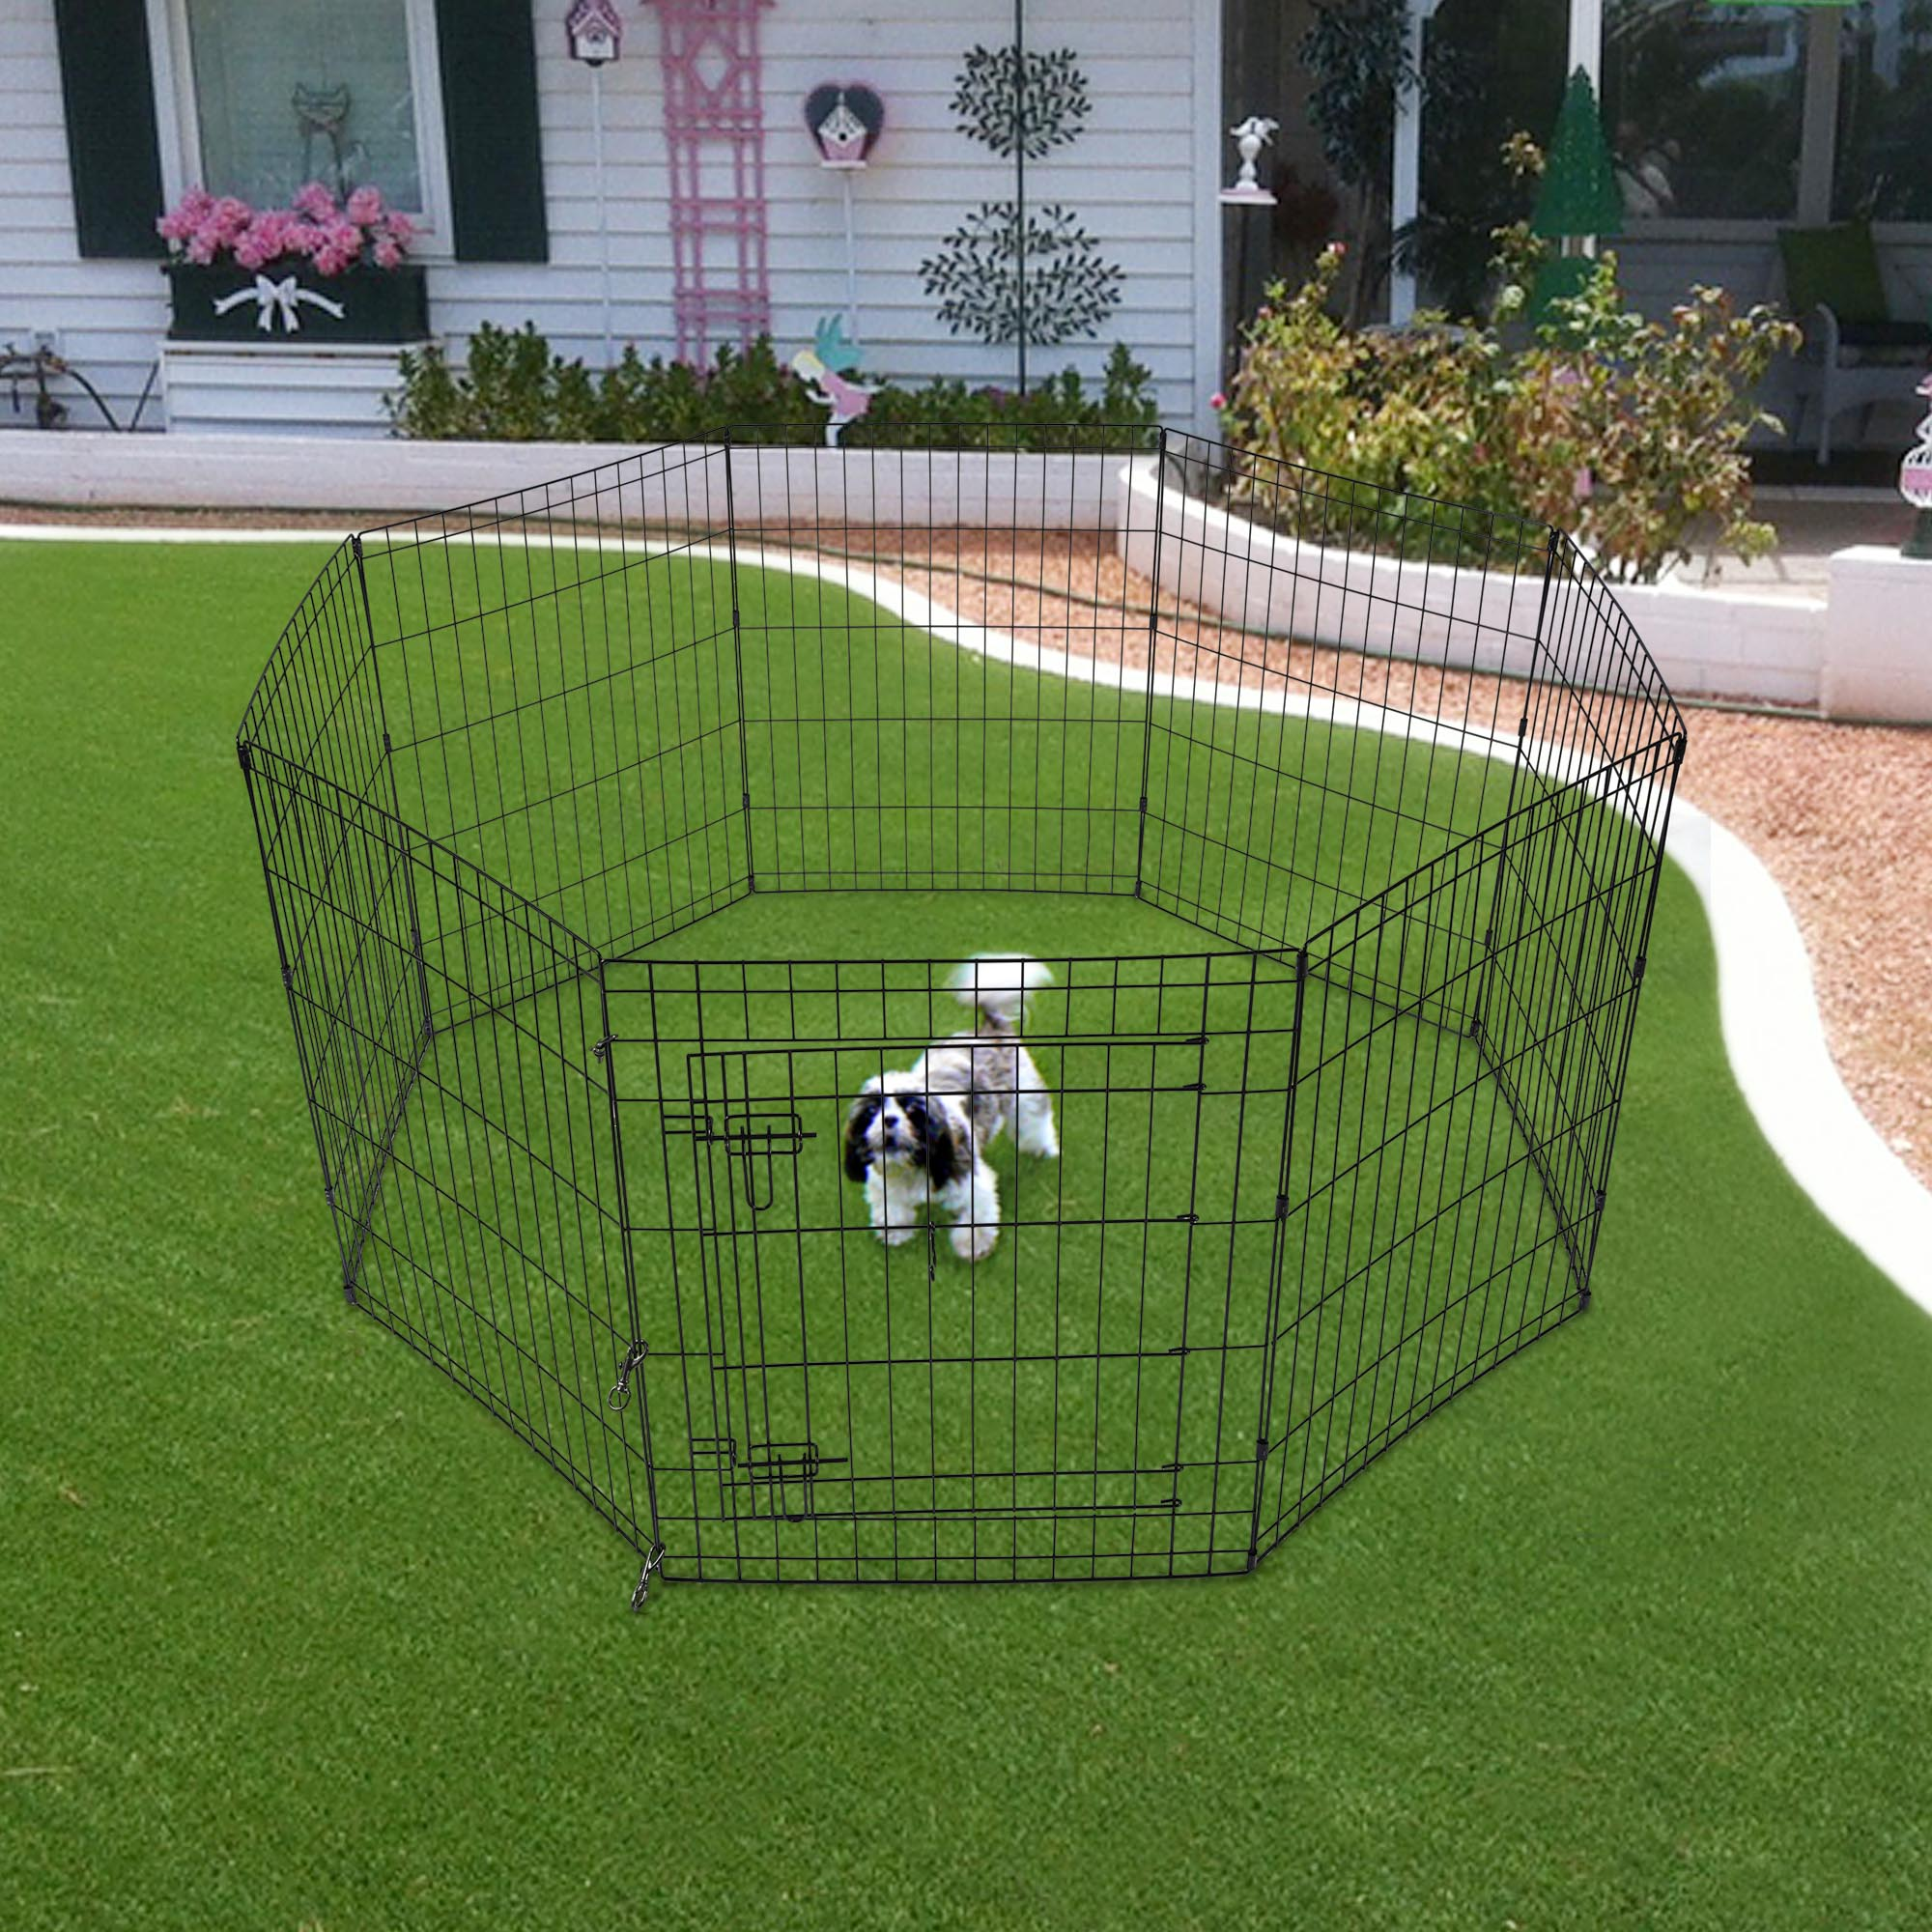 24-30-36-42-48-Dog-Pet-Playpen-Metal-Crate-Fence-Cage-8-Panel-Exercise-Play-Pen thumbnail 19